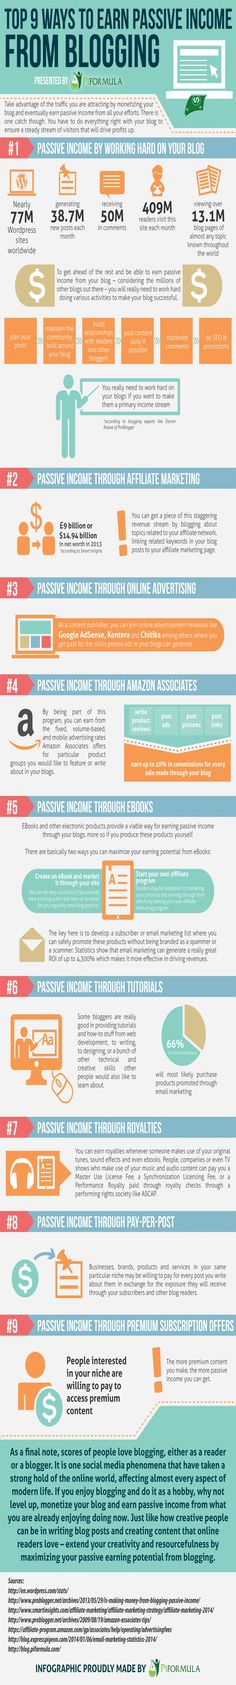 Top 9 Ways to Earn Passive Income from Blogging